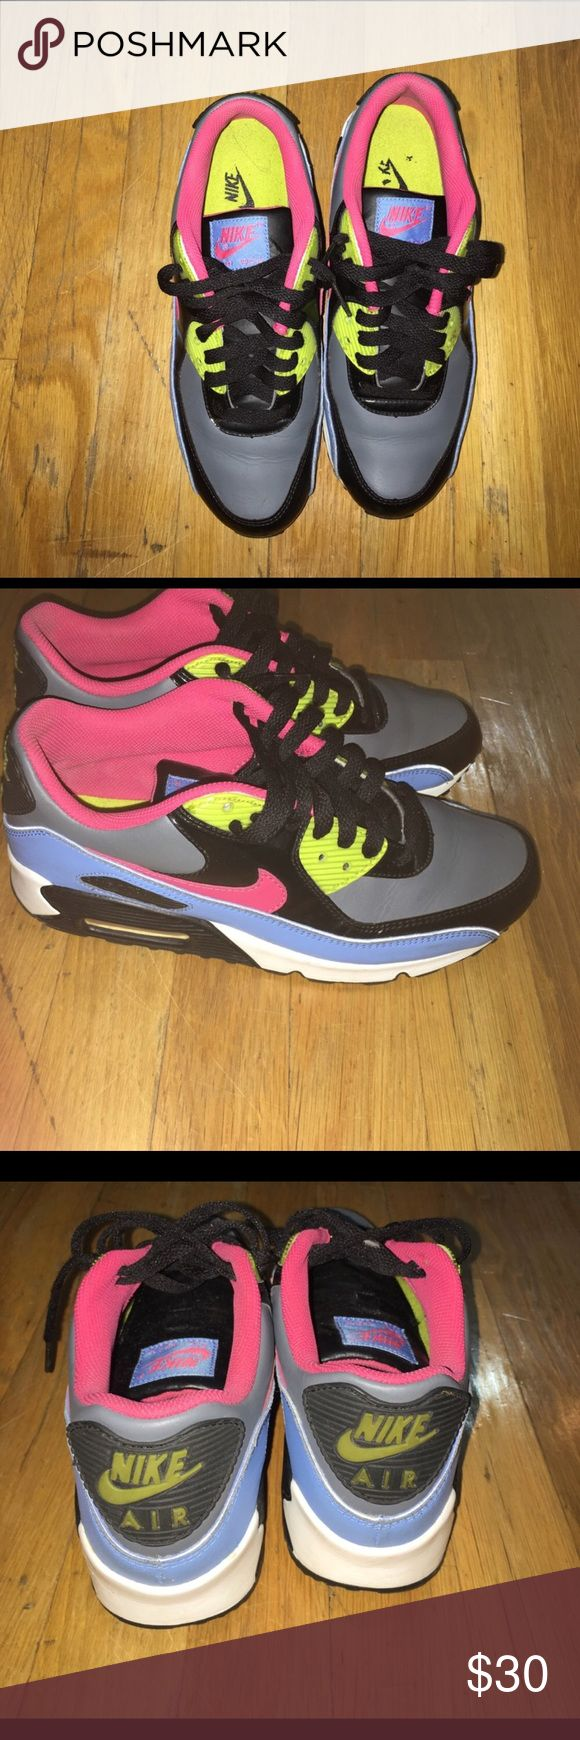 Nike Air Max Kids Sz 6.5 Grey, black, pink green Big Kids Sz 6.5 Nike Shoes Sneakers